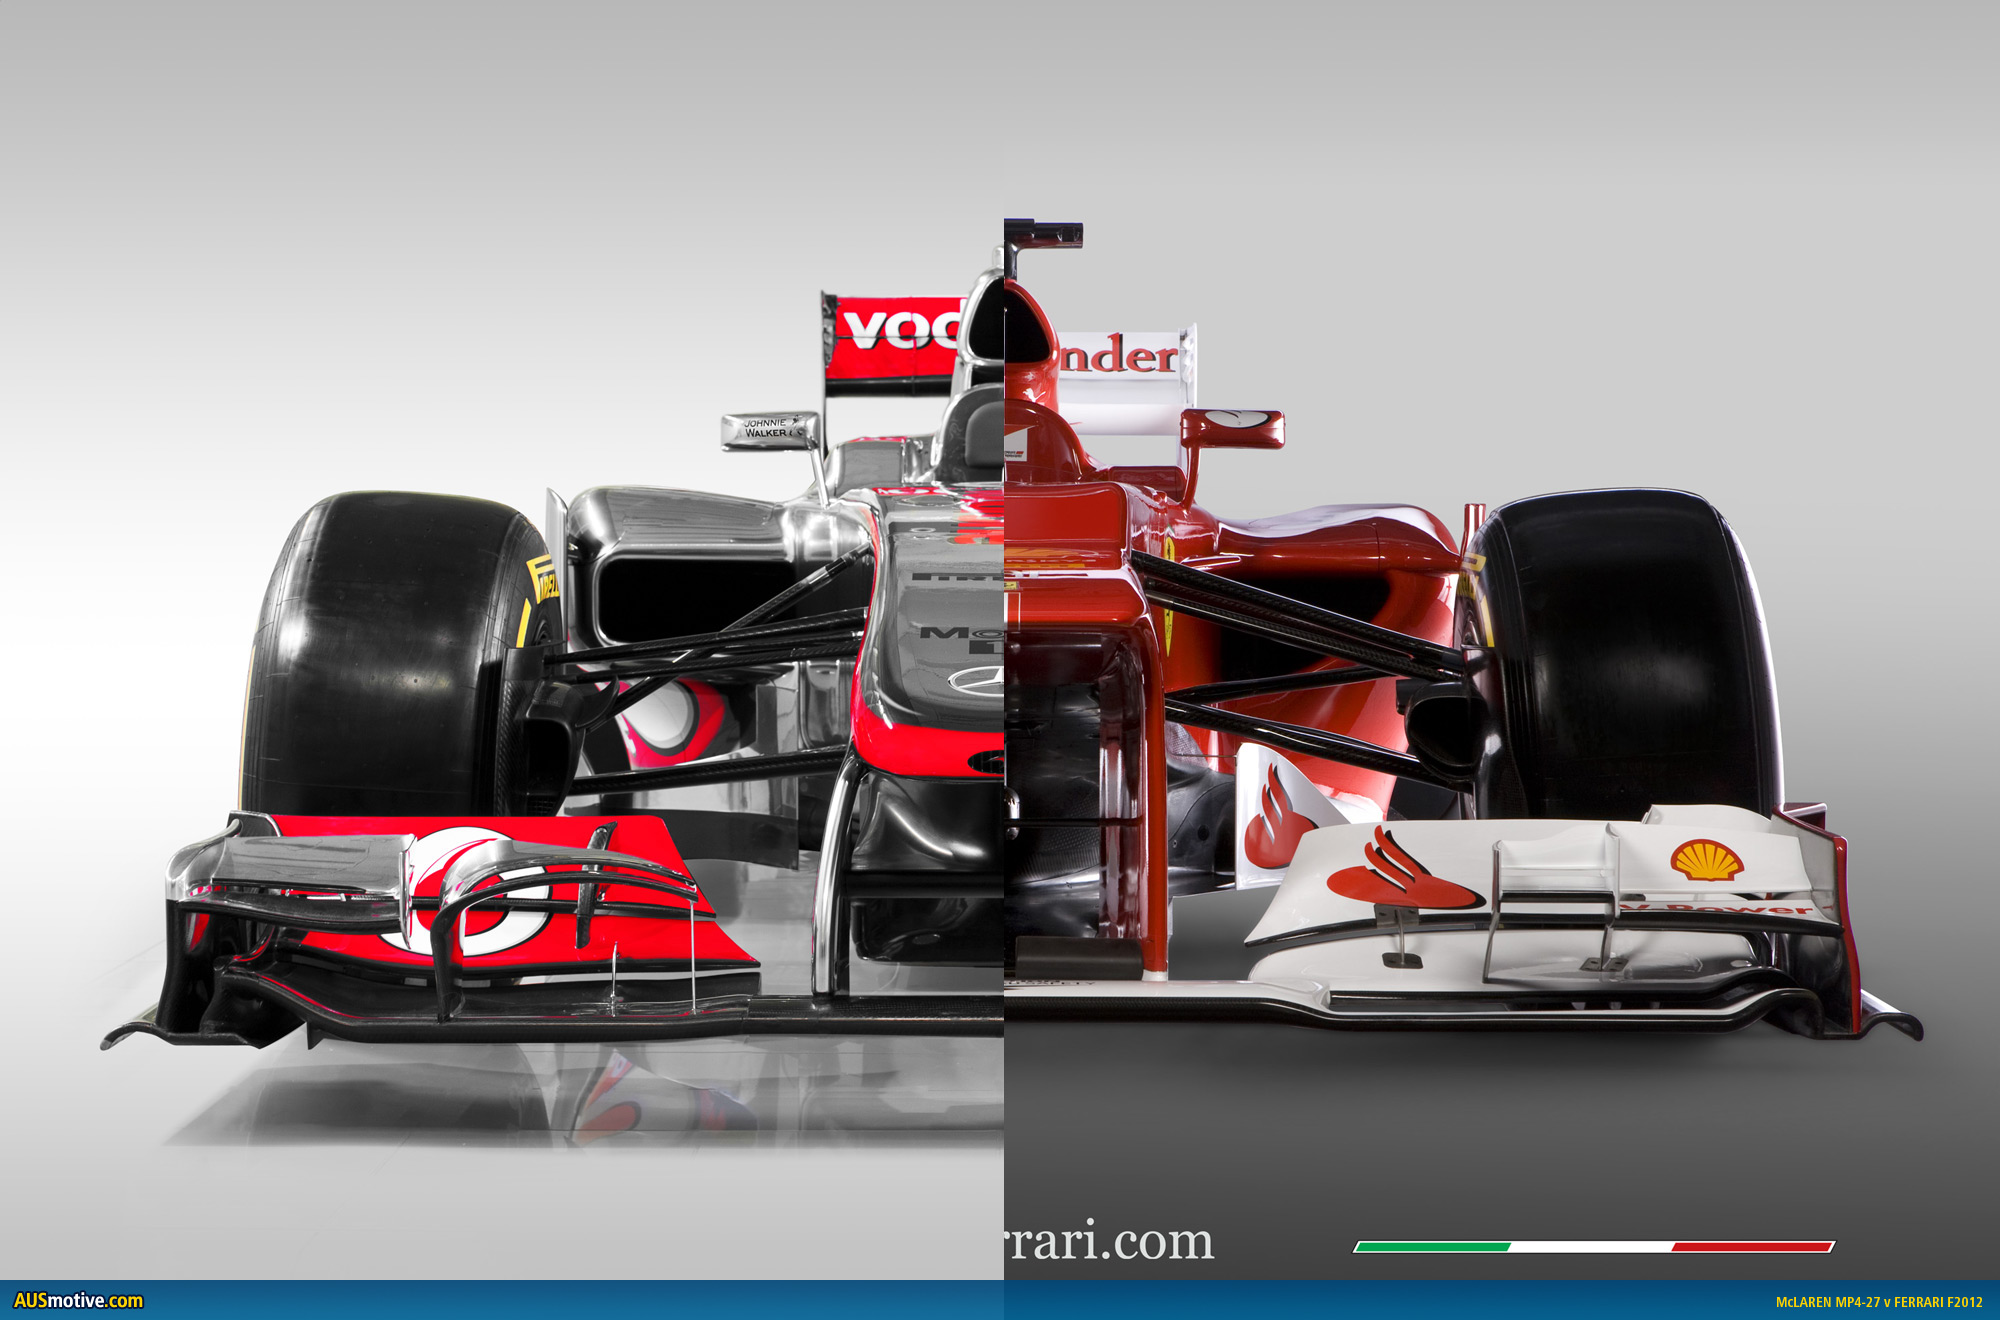 mclaren mp4-28 (pre-launch speculation) - page 17 - f1technical